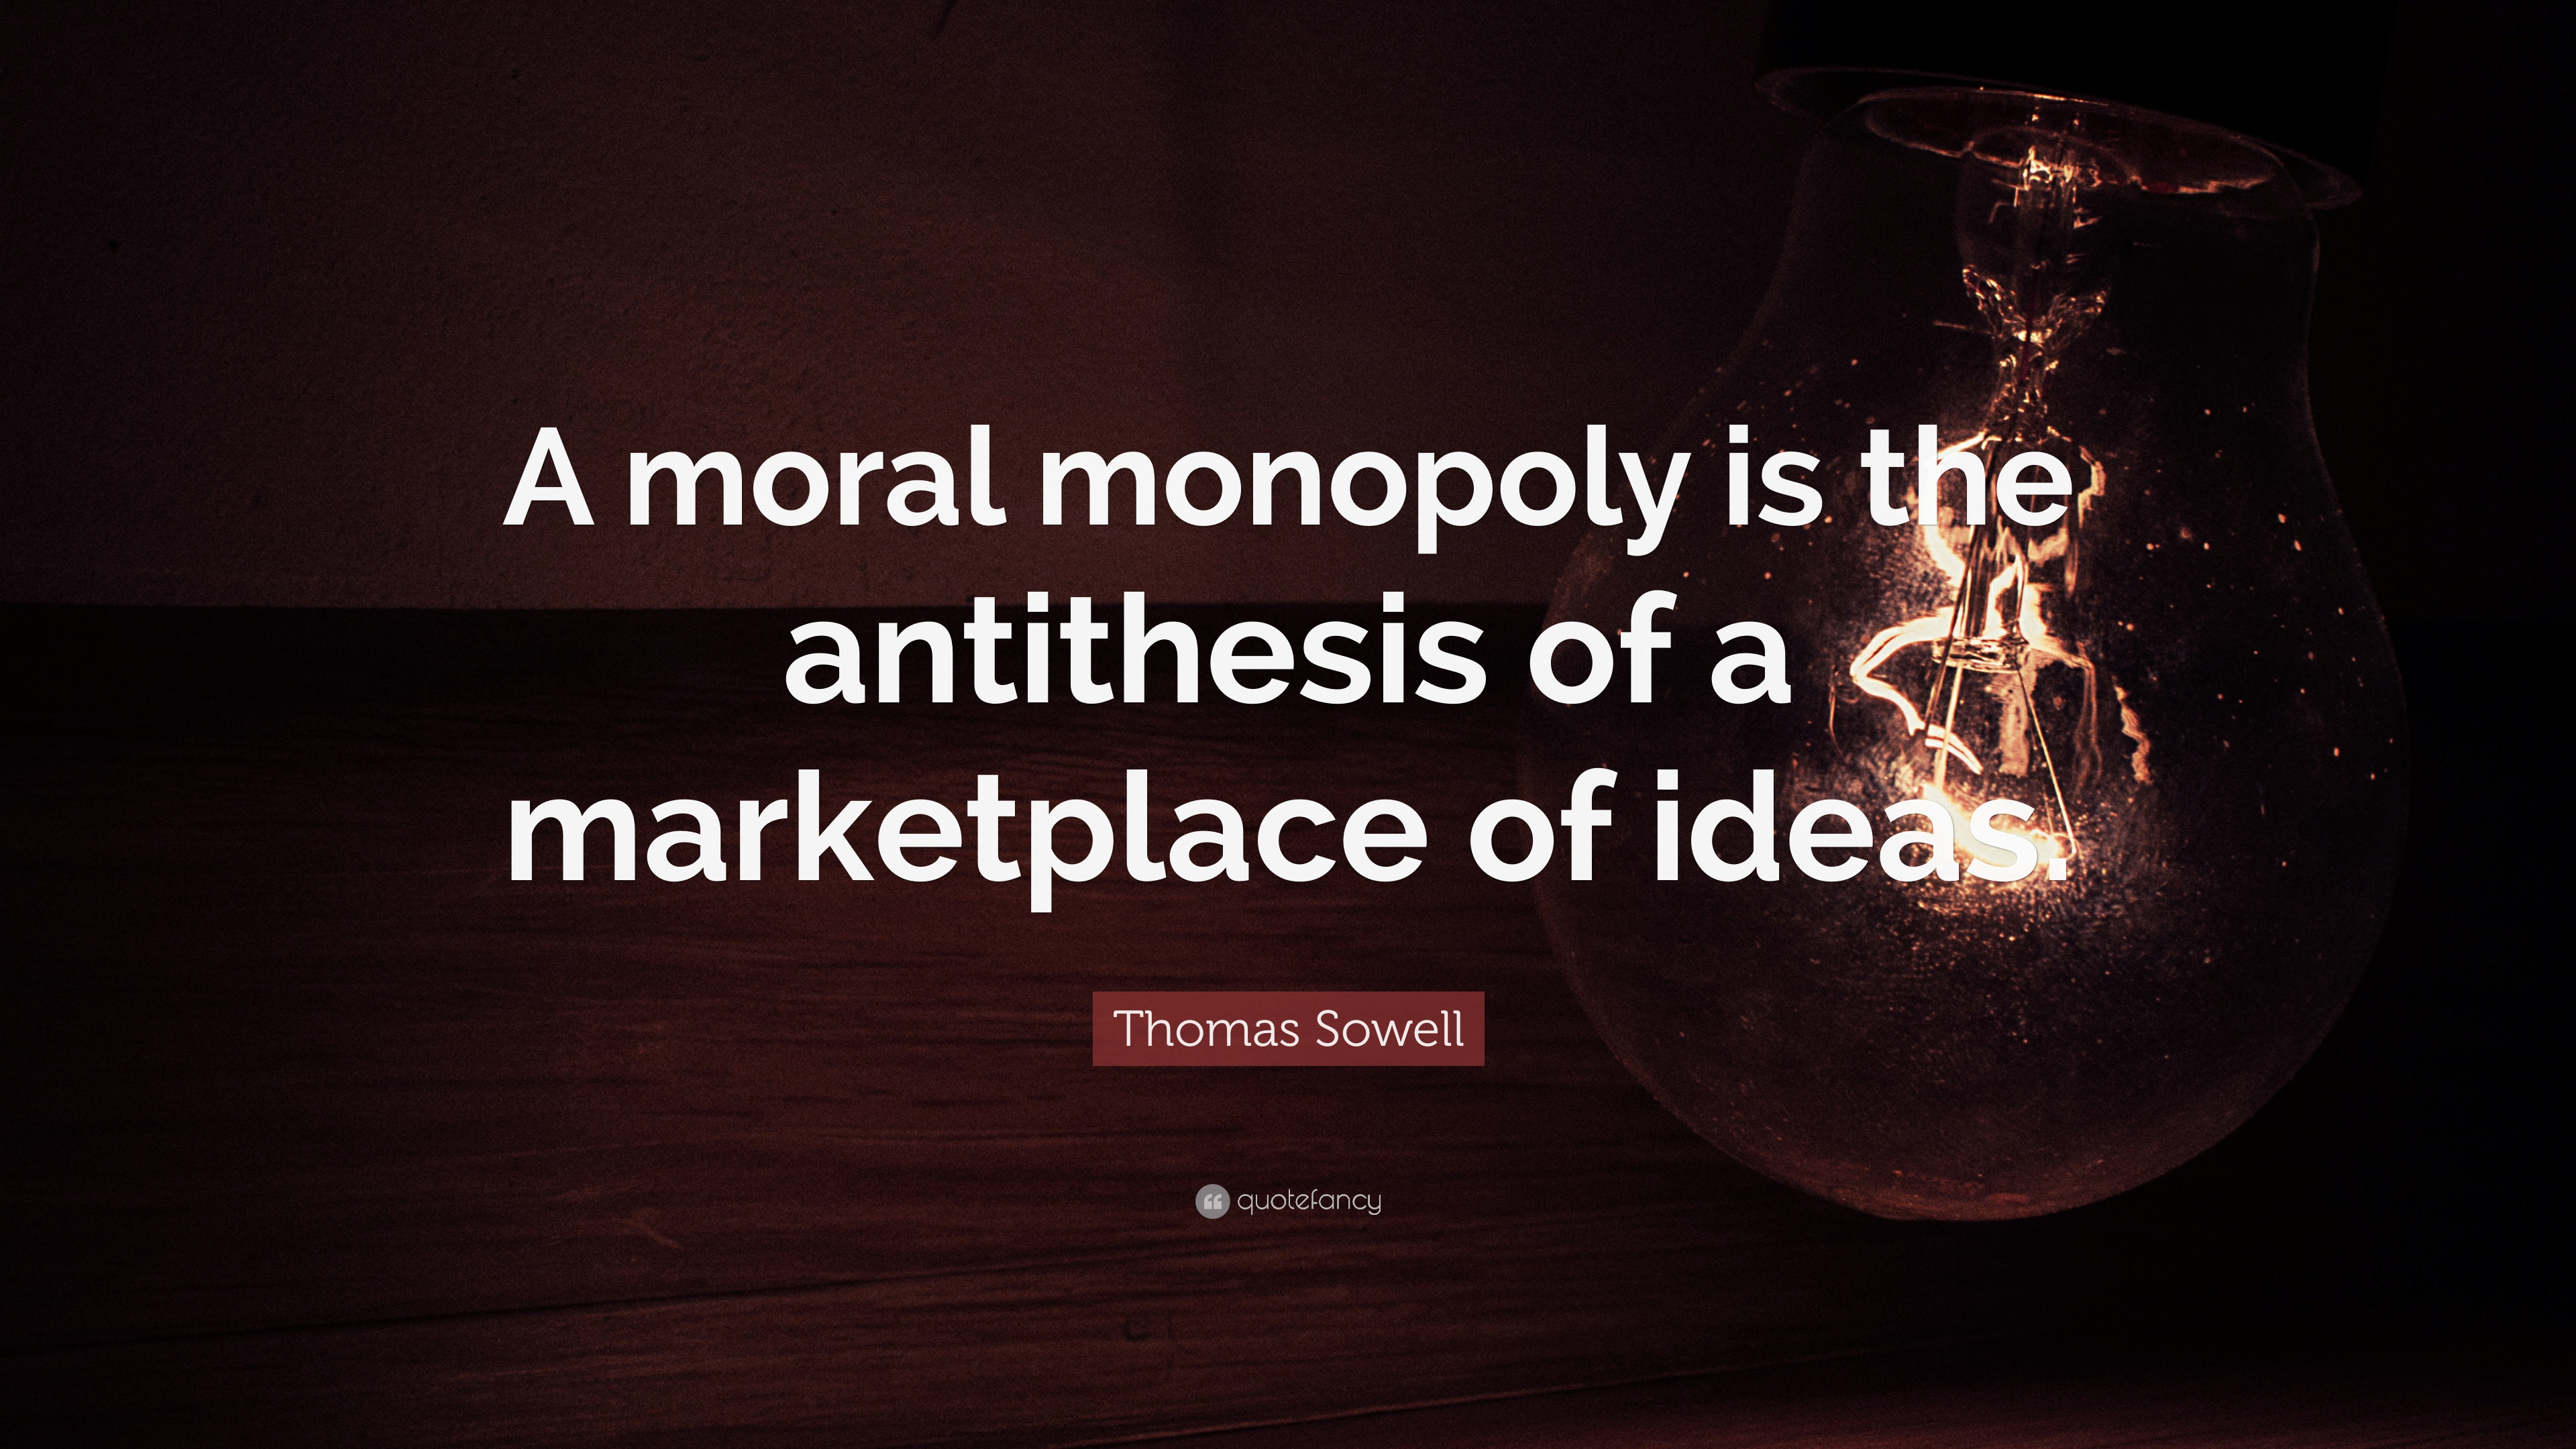 thomas sowell quote a moral monopoly is the antithesis of a